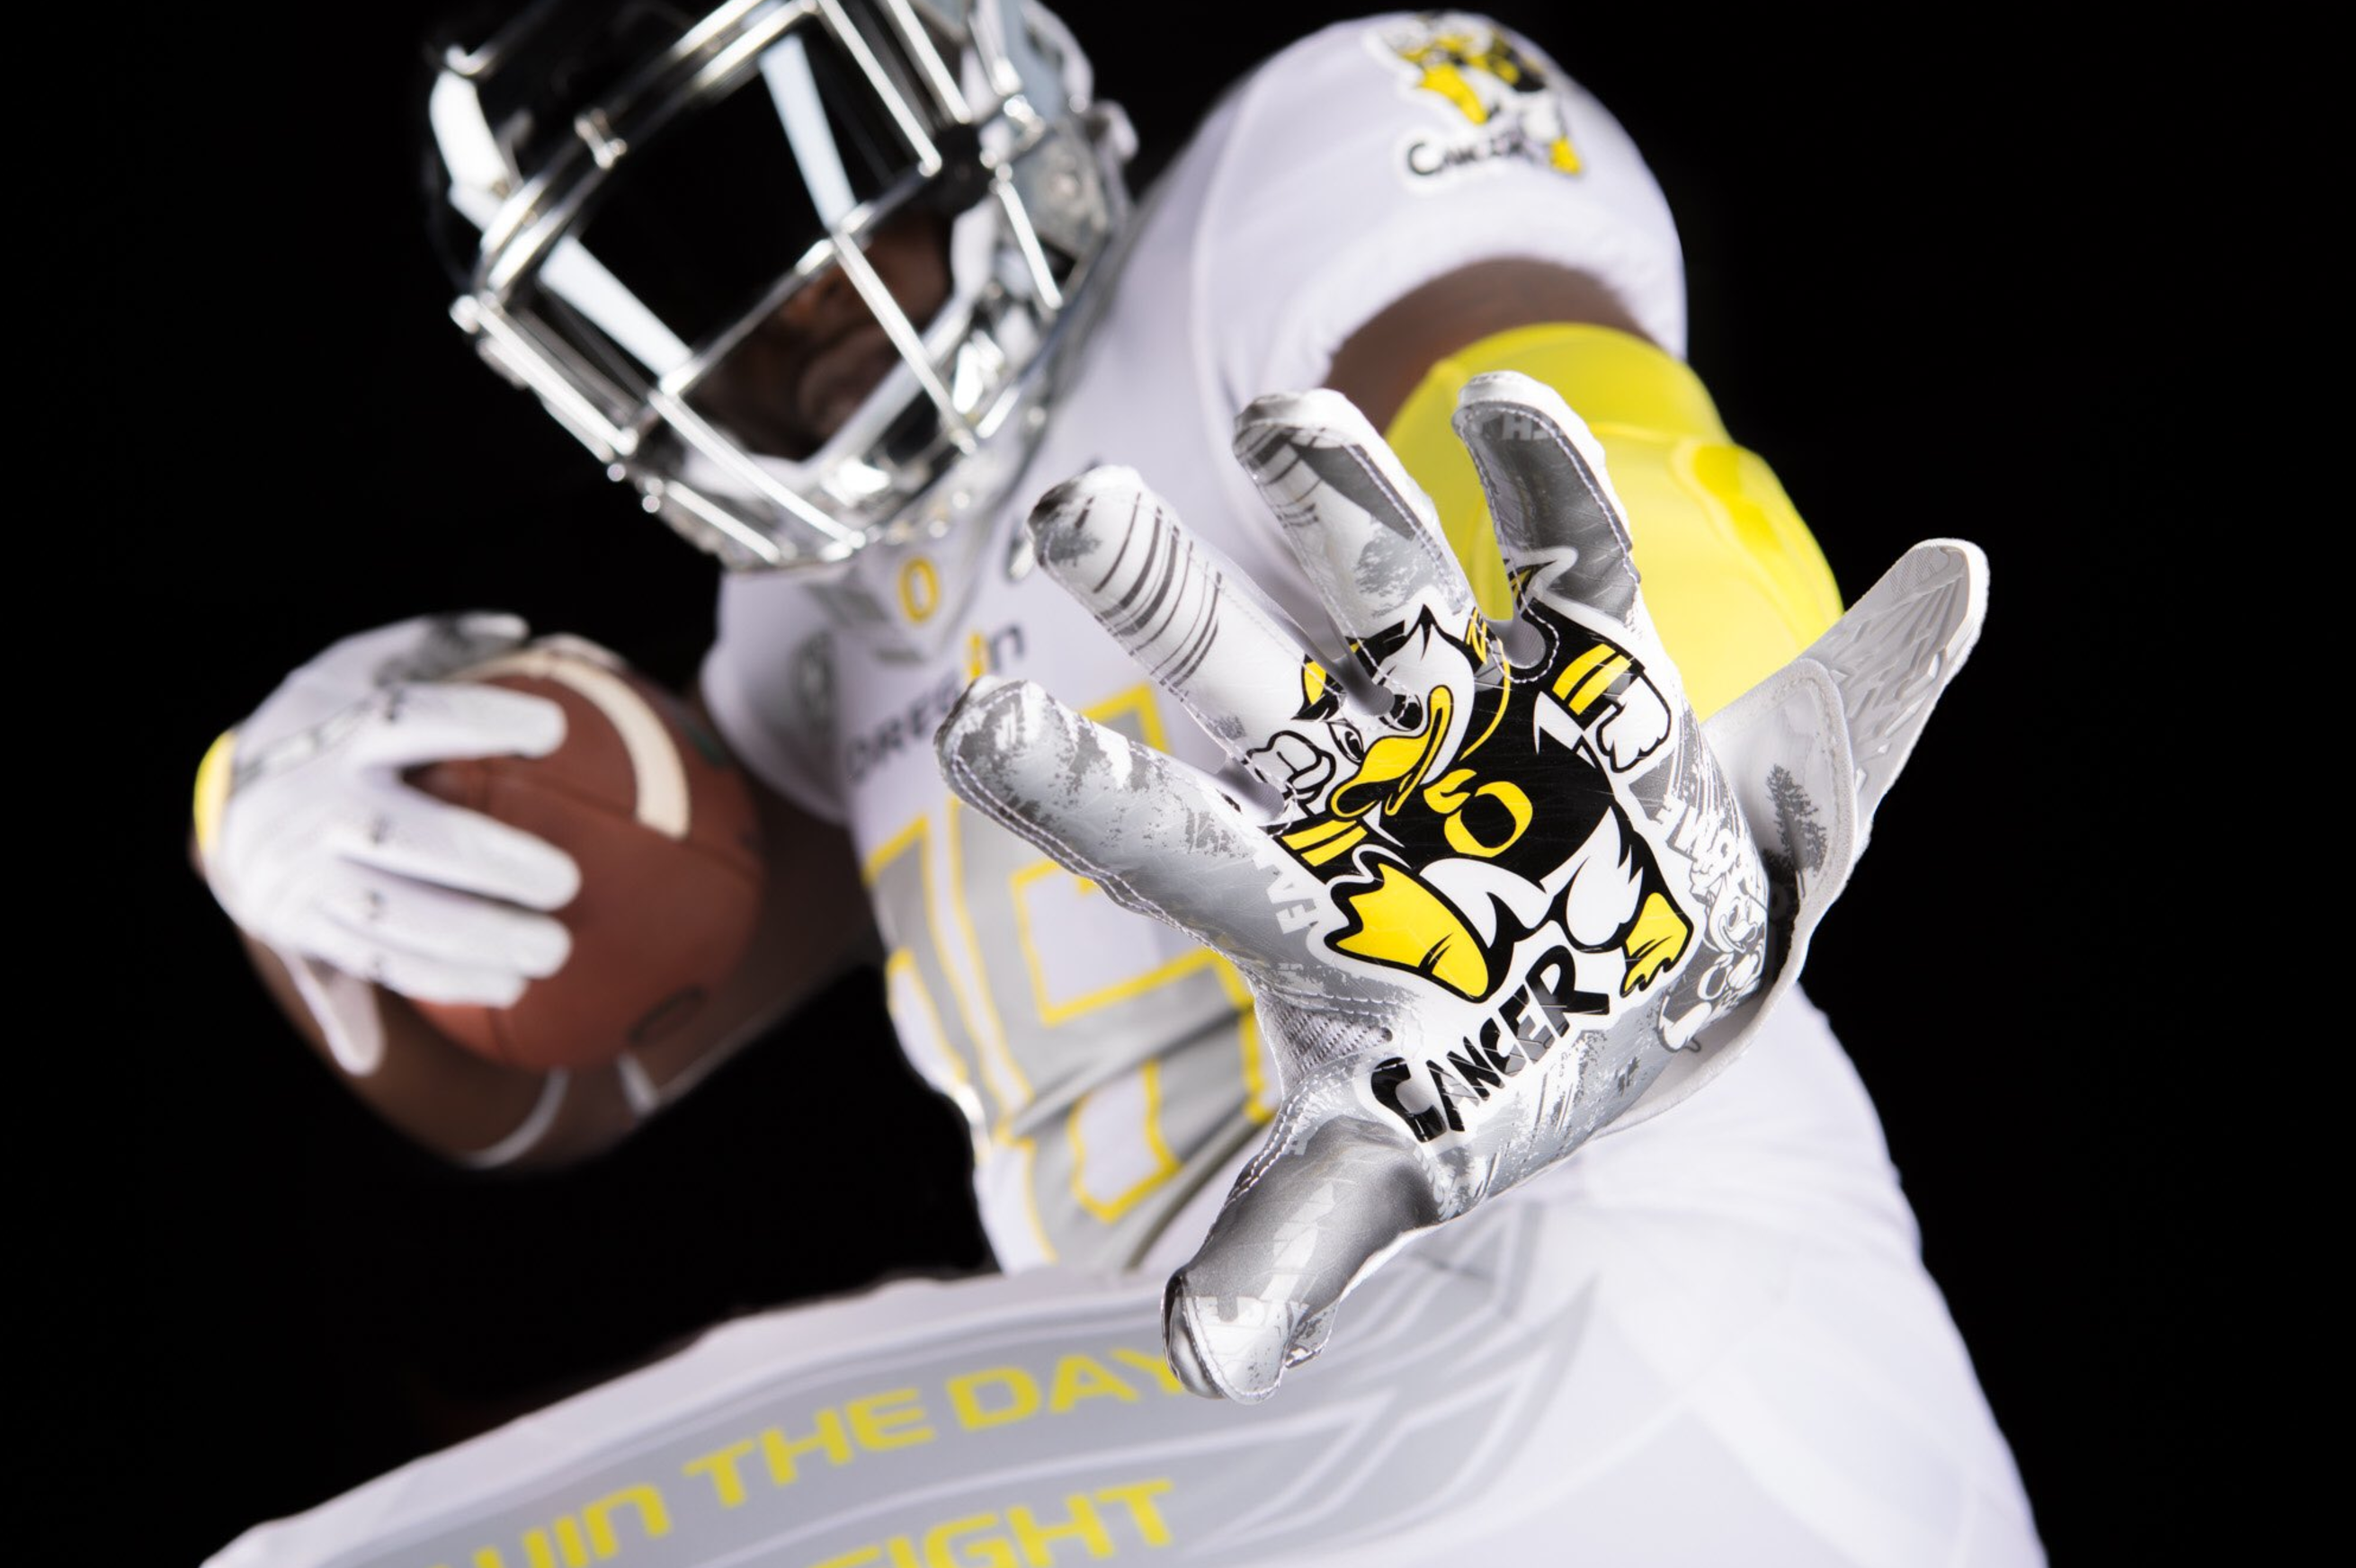 Oregon Will Wear 'Stomp Out Cancer' Uniforms Designed by Cancer Patients